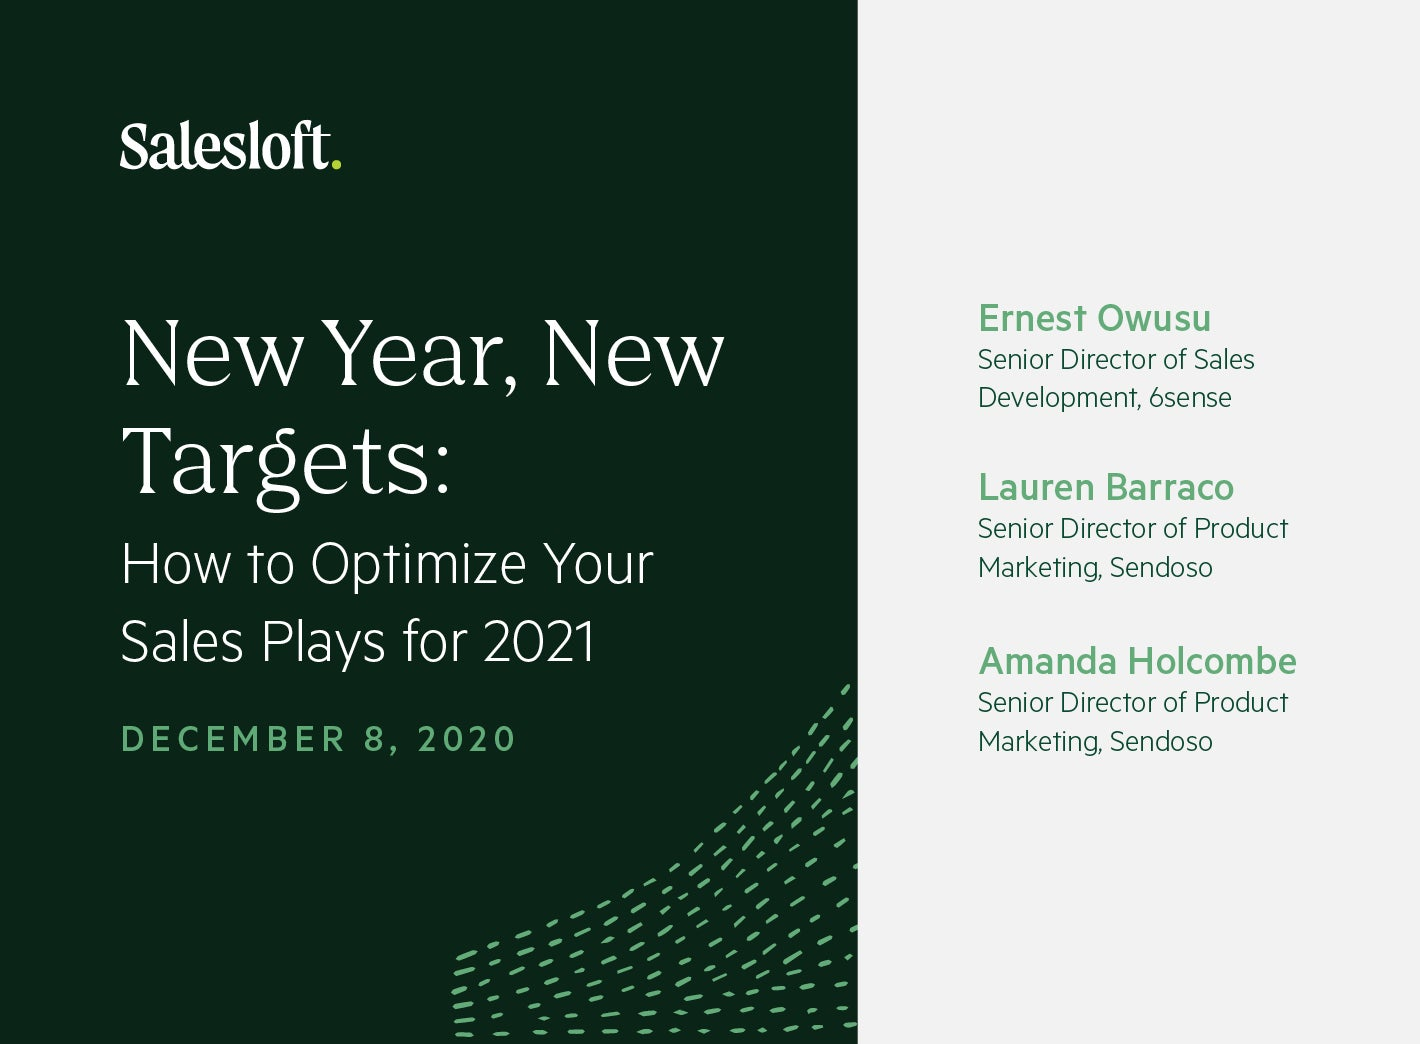 New Year, New Targets: How to Optimize Your Sales Plays for 2021